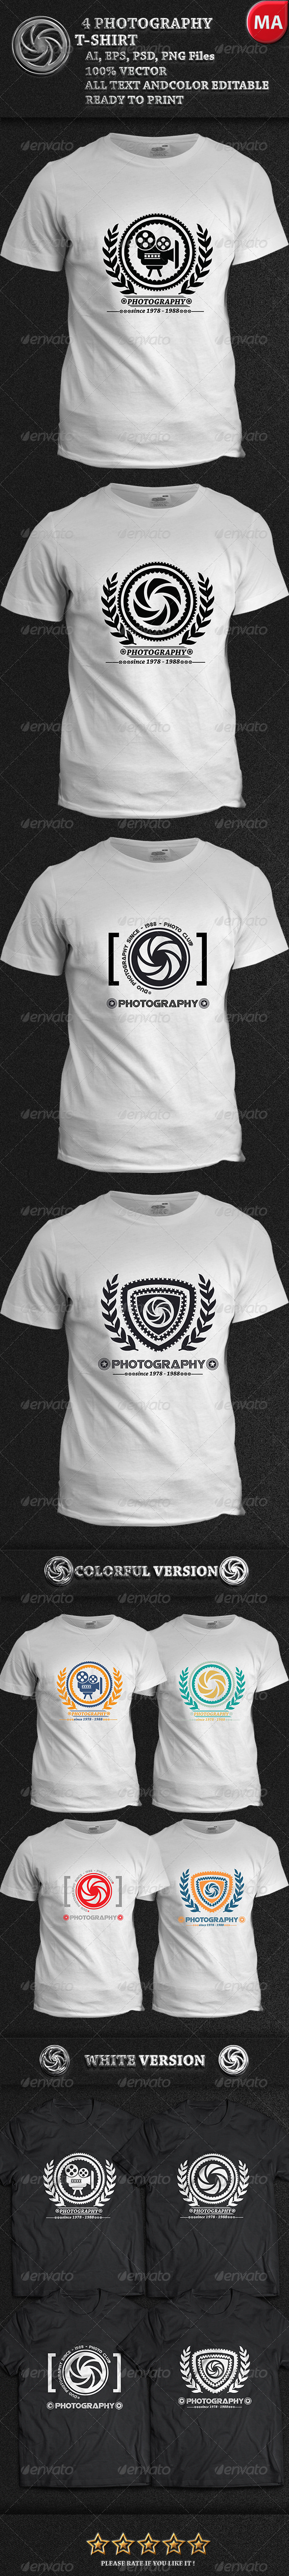 GraphicRiver 4 Photography T-Shirt 7654097